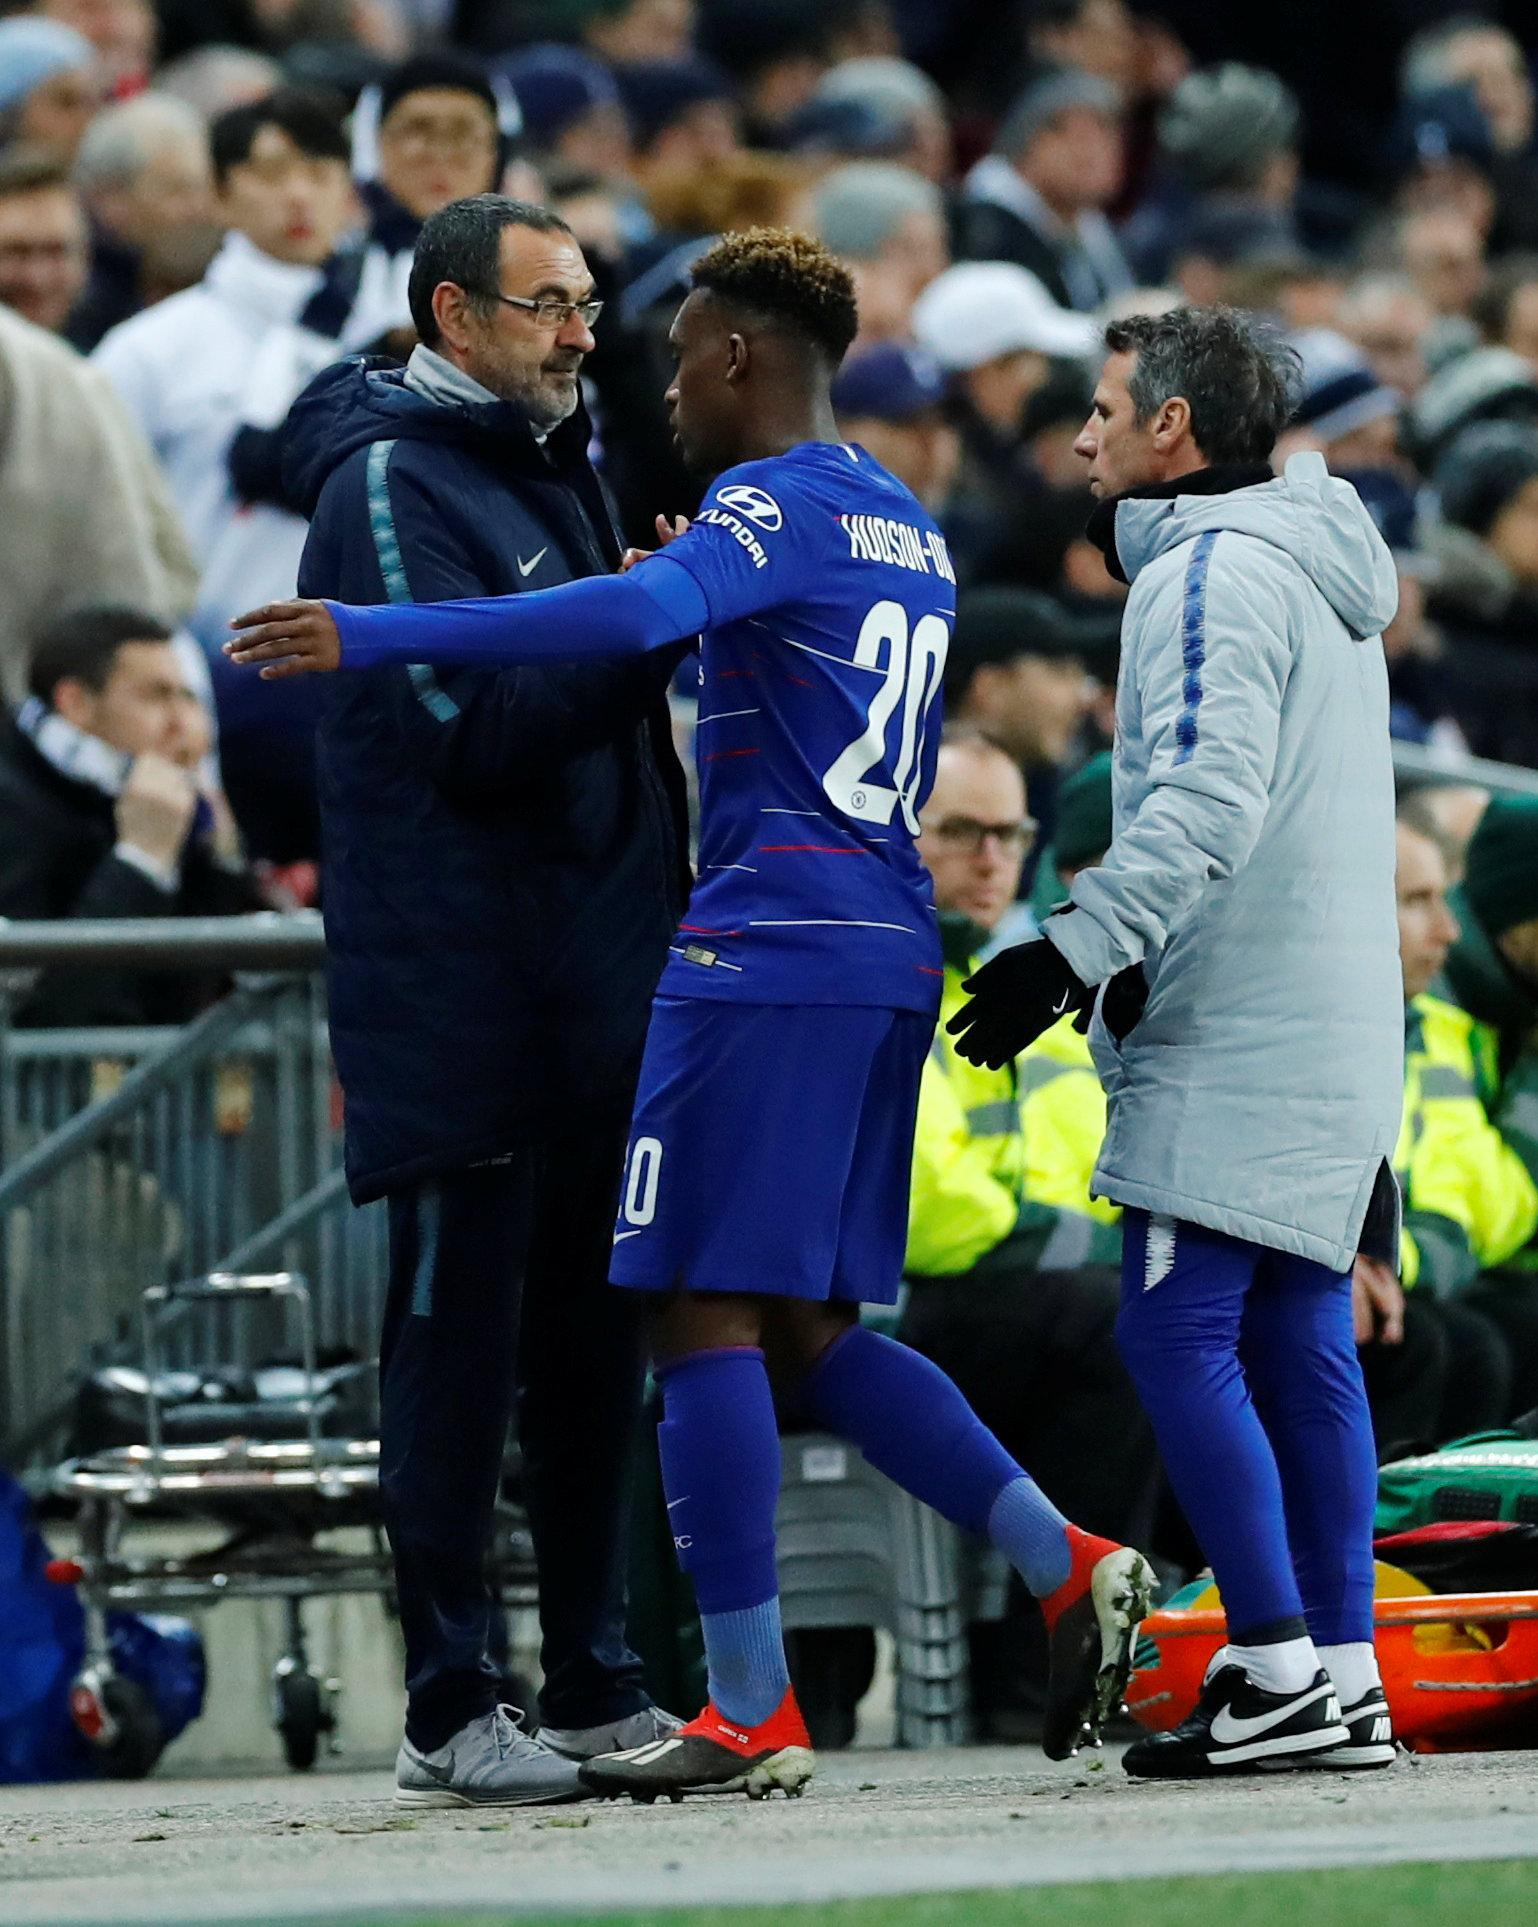 Callum Hudson-Odoi could be on the move this month, after being frustrated with life on the Chelsea bench